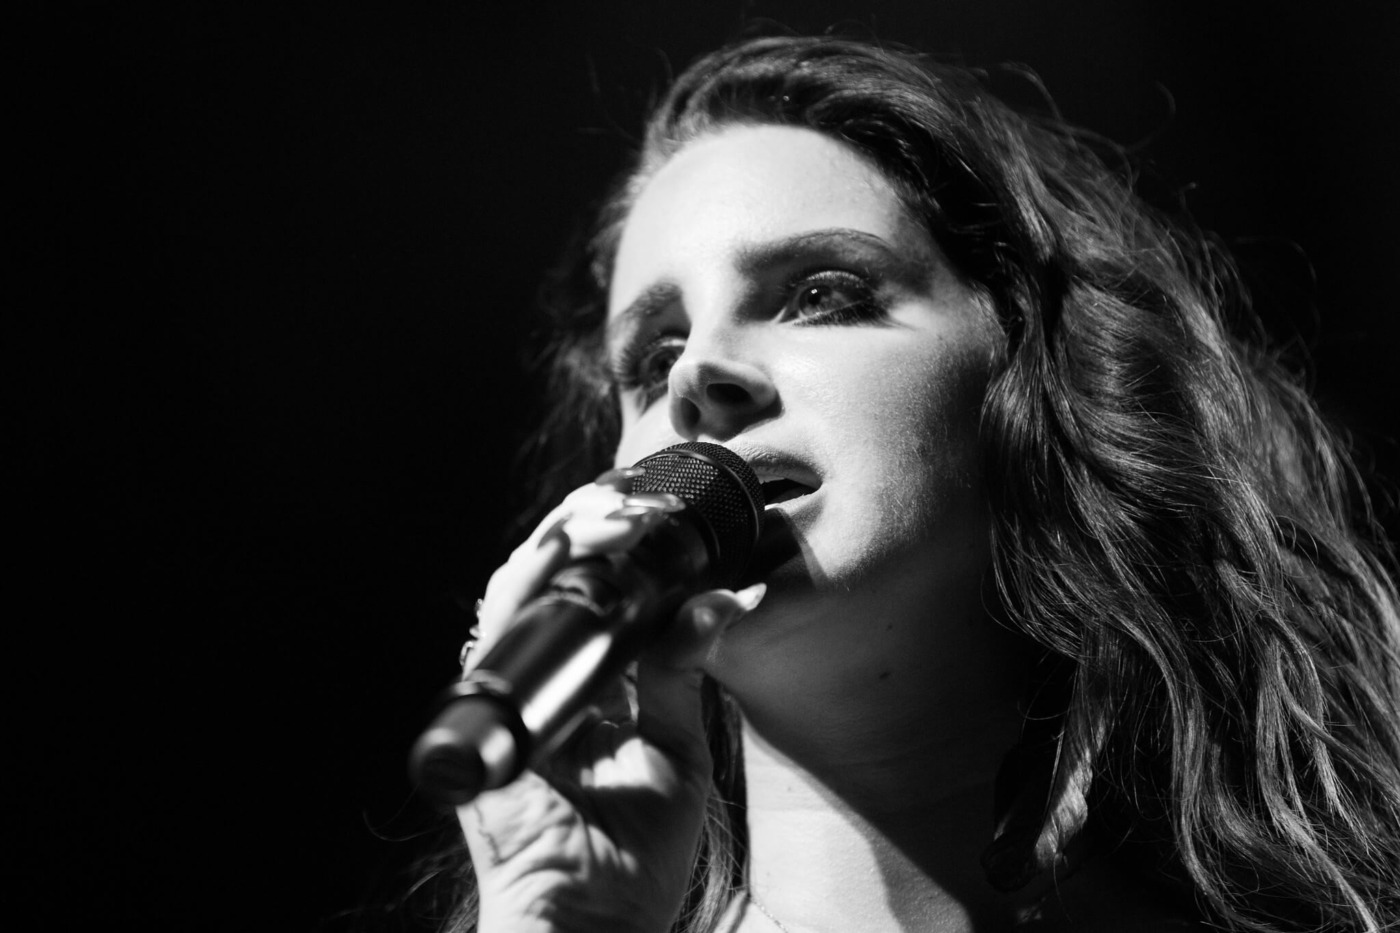 Lana Del Rey performing, 'Video Games'